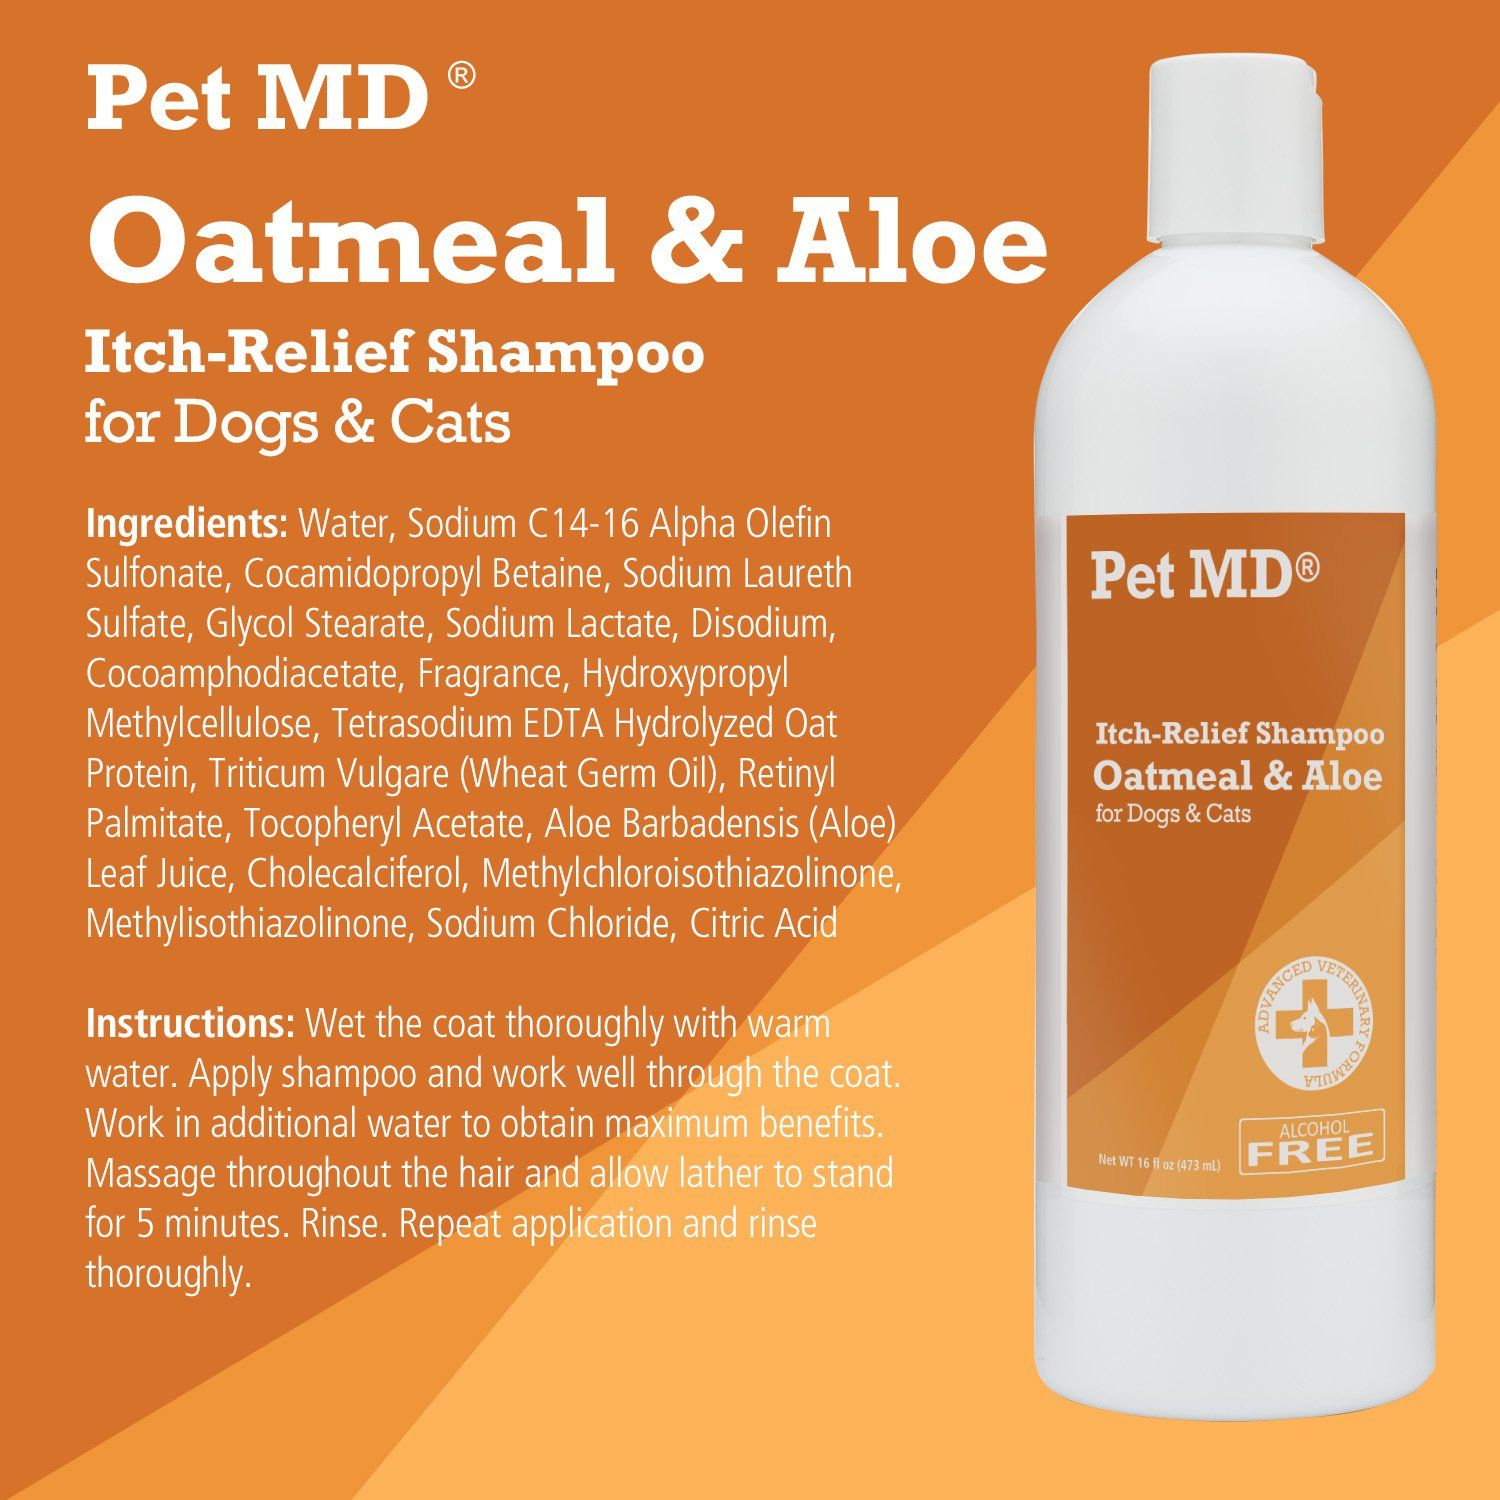 Pet Md Oatmeal Dog Shampoo Cats And Dogs For Itch Relief And Moisturizer For Dry Skin And Coat 16 Oz Want Ext Oatmeal Dog Shampoo Cat Shampoo Dog Shampoo